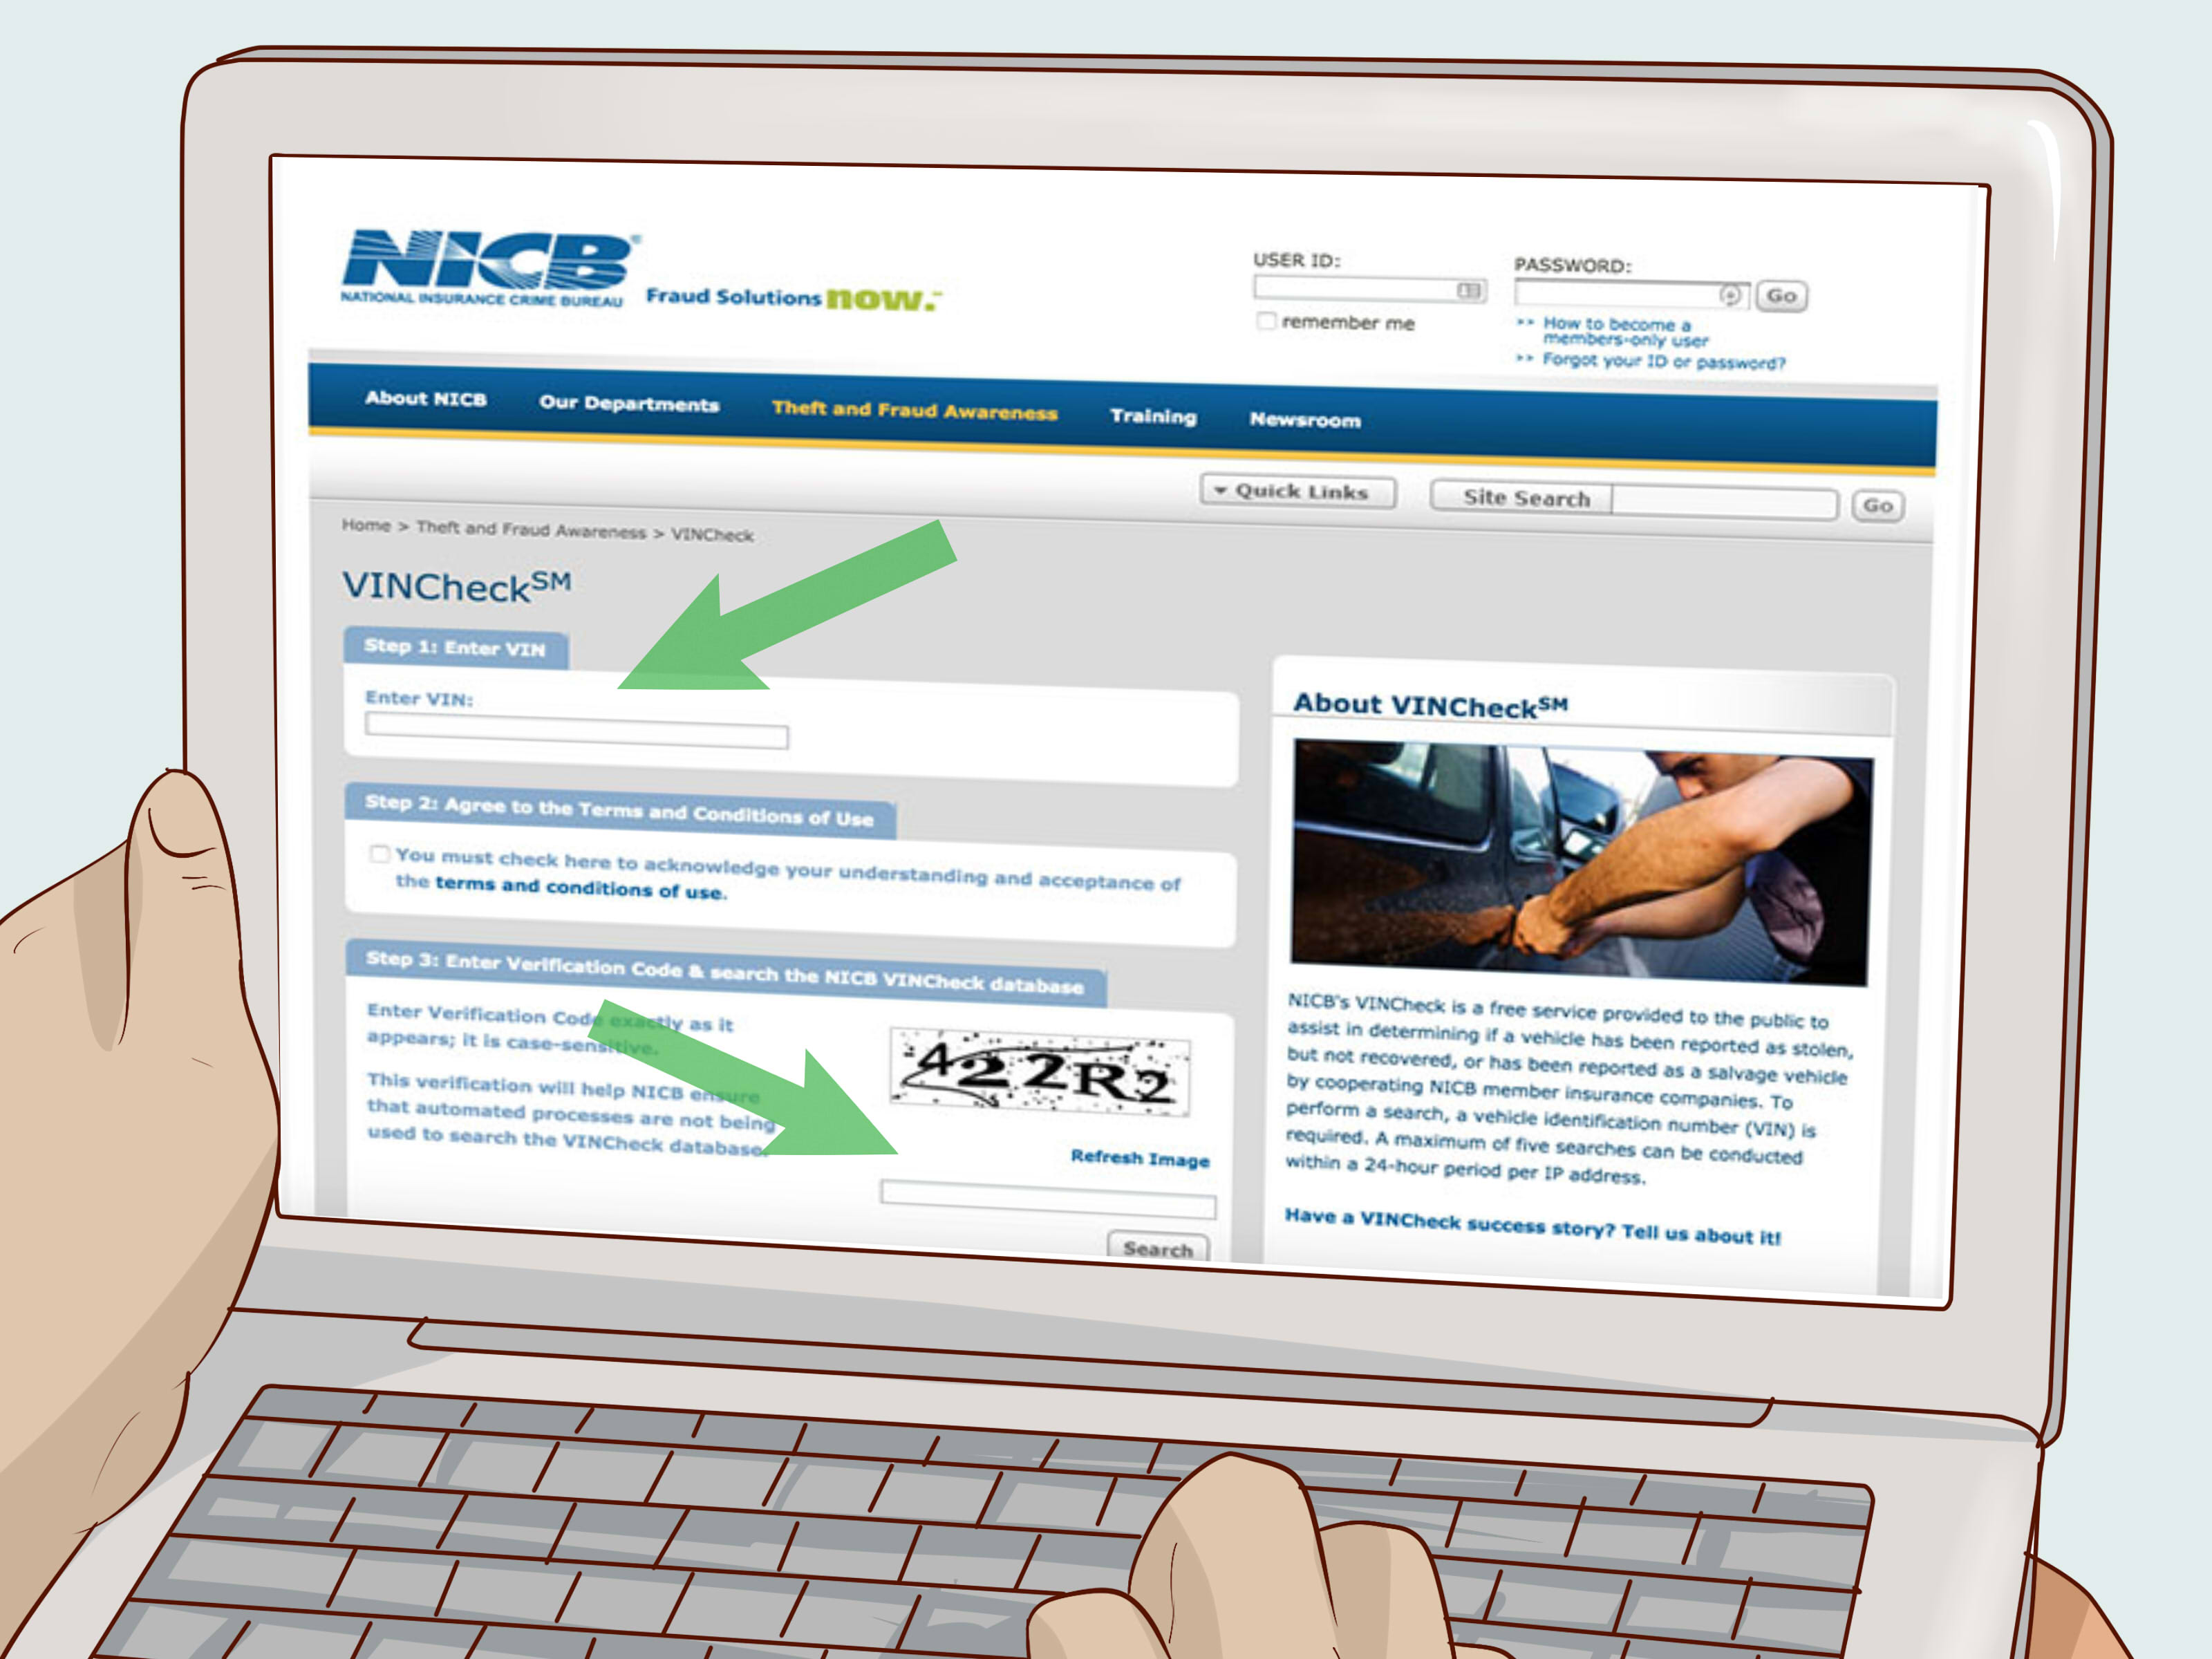 Carfax Service Awesome 4 Ways to Check Vehicle History for Free Wikihow